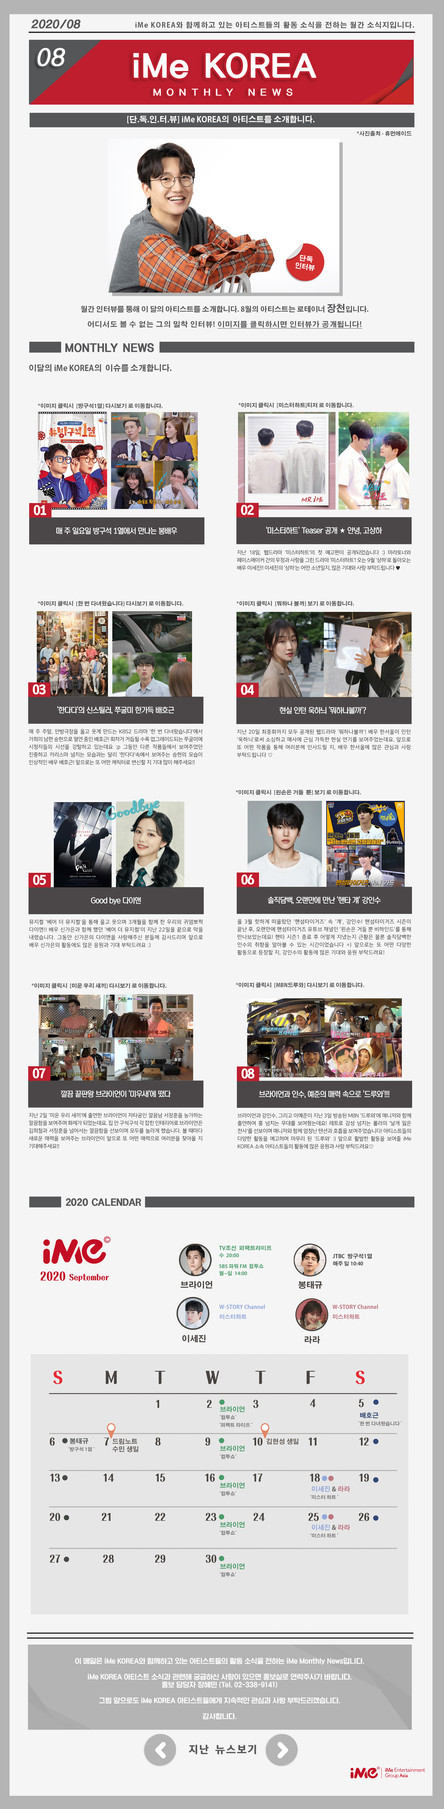 iMe KOREA News